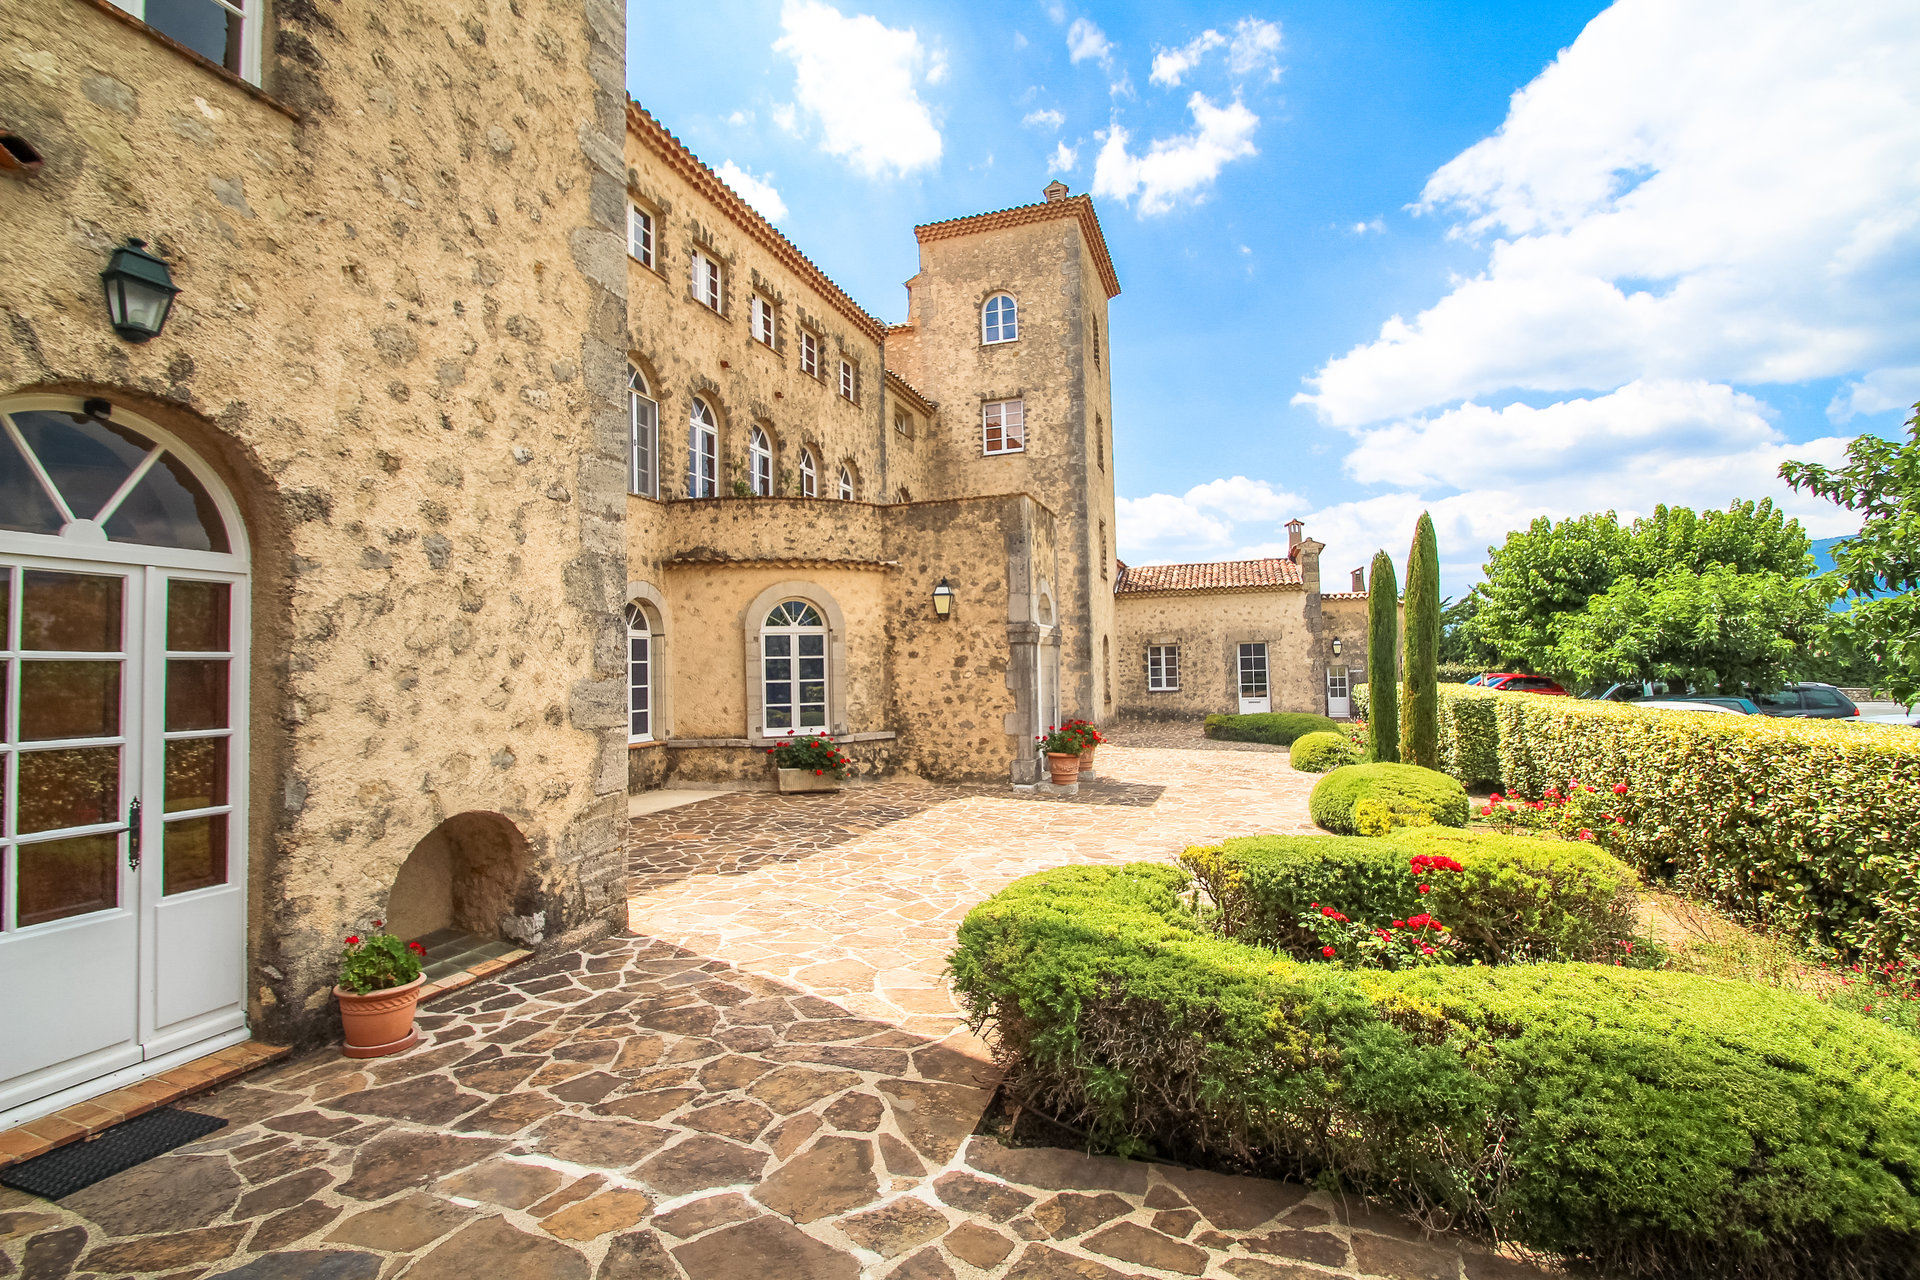 Nice apartment in Chateau du Puy